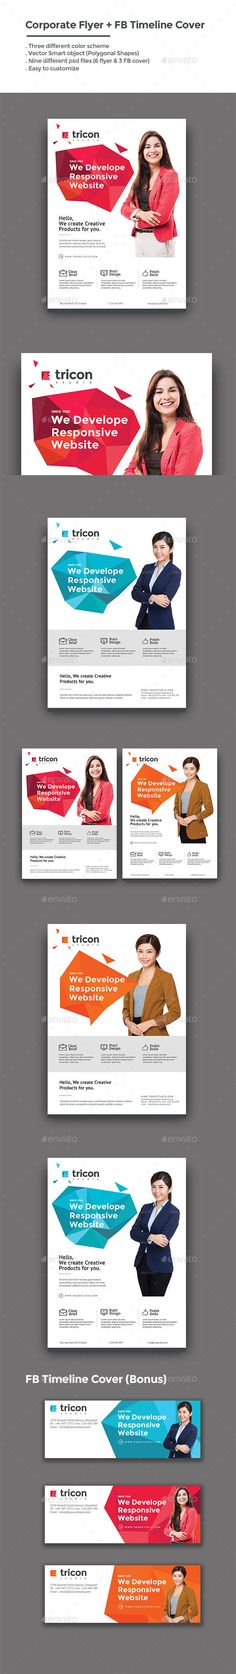 Flyer Template Flyers, Item and Flyer template - advertising timeline template